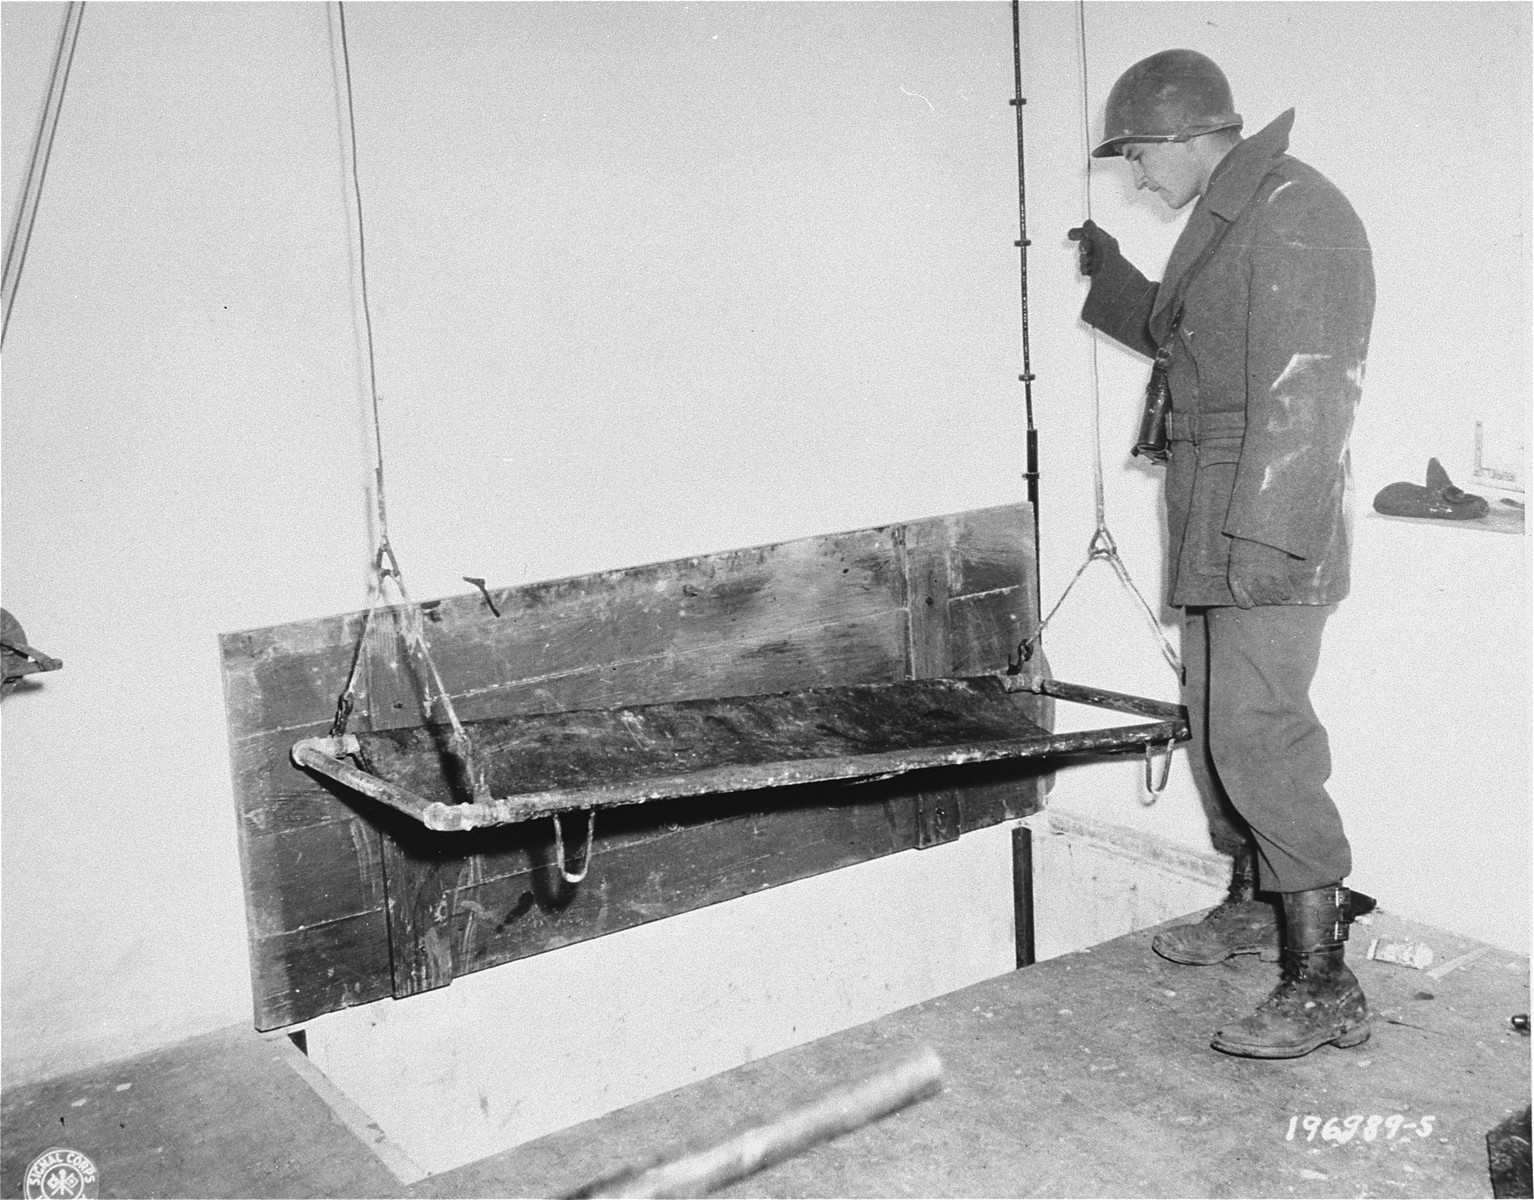 An American soldier tests the crematorium elevator while on an inspection of the Natzweiler-Struthof concentration camp.